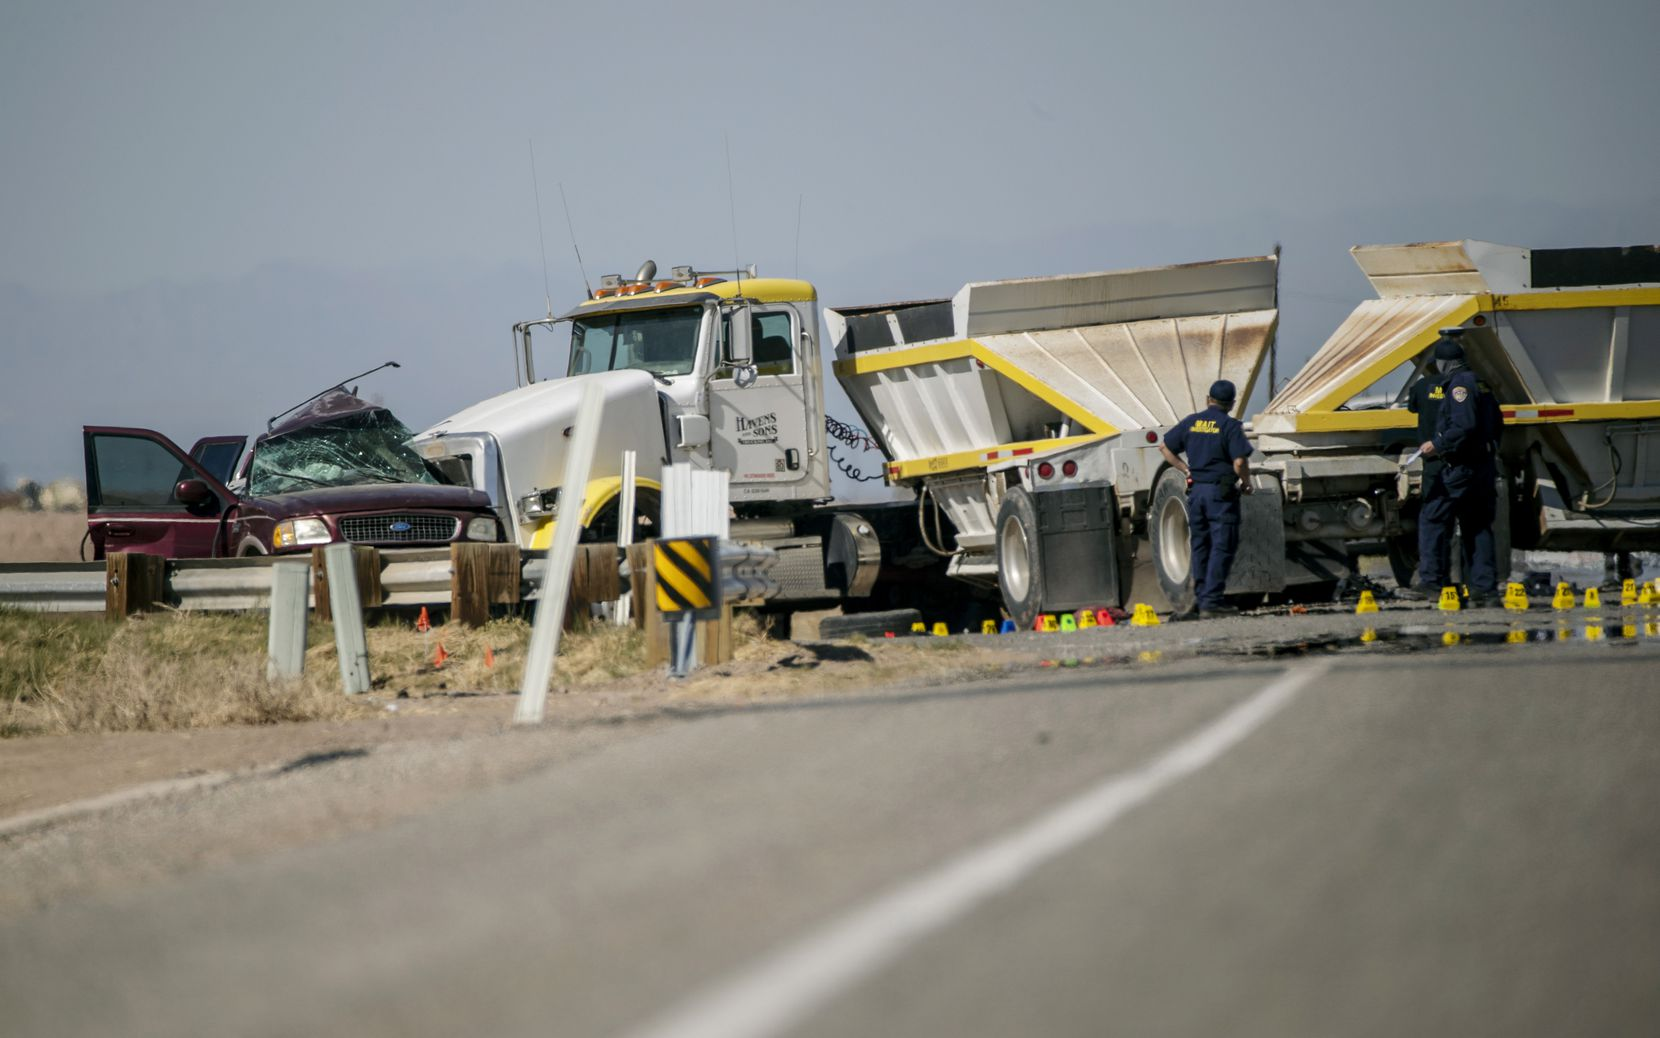 Police investigate the scene where an SUV carrying 25 people collided with a semi-truck, killing 13, on Highway 115 near the Mexican border on March 2, 2021 in Holtville, Calif.